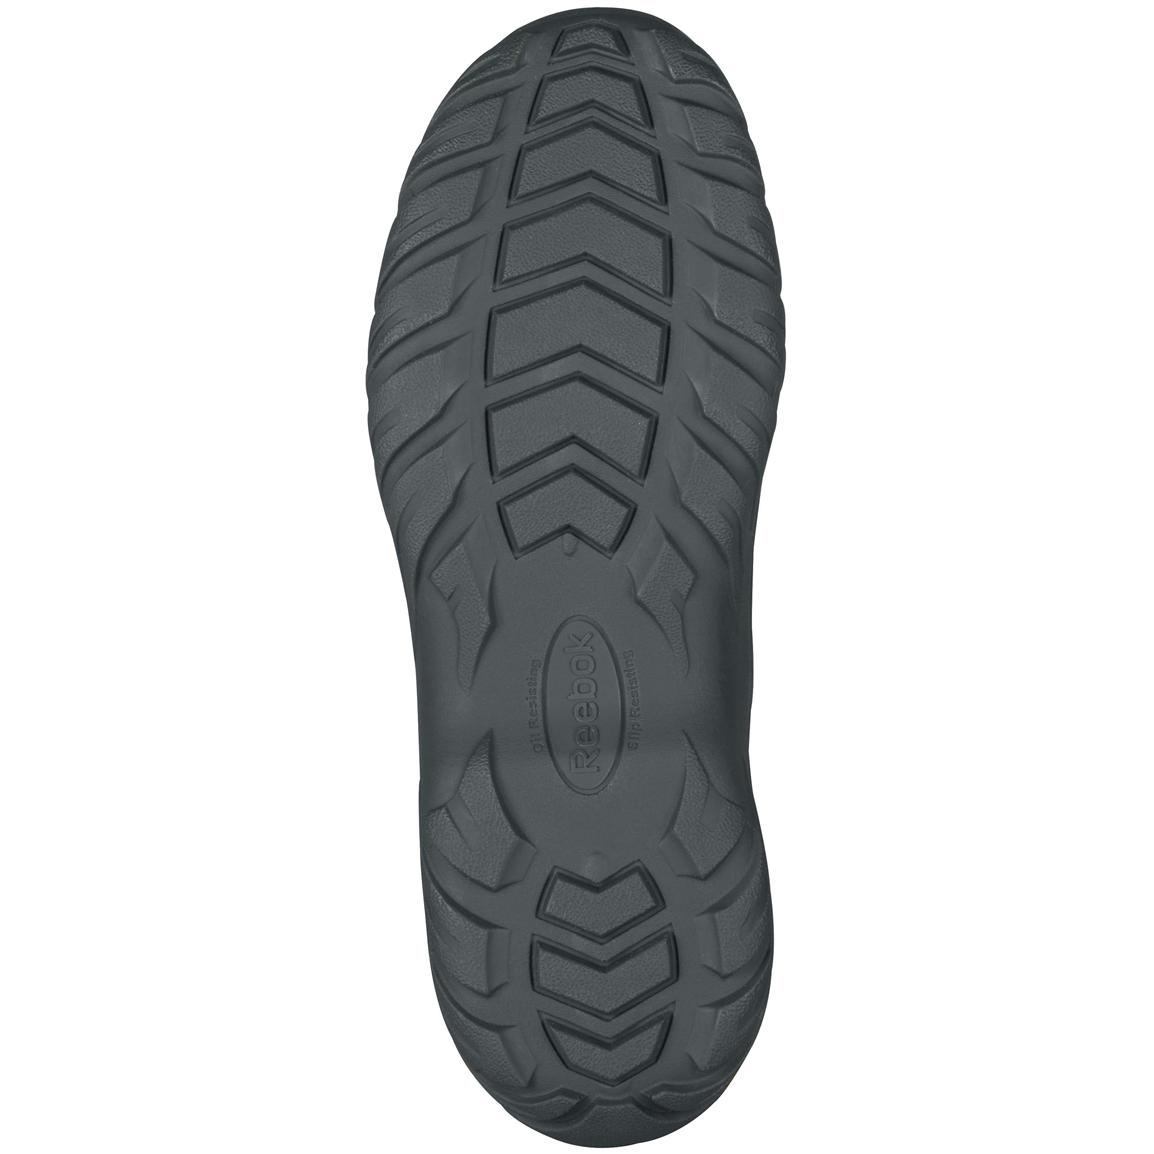 RECON Rugged Terrain slip-resistant rubber outsole